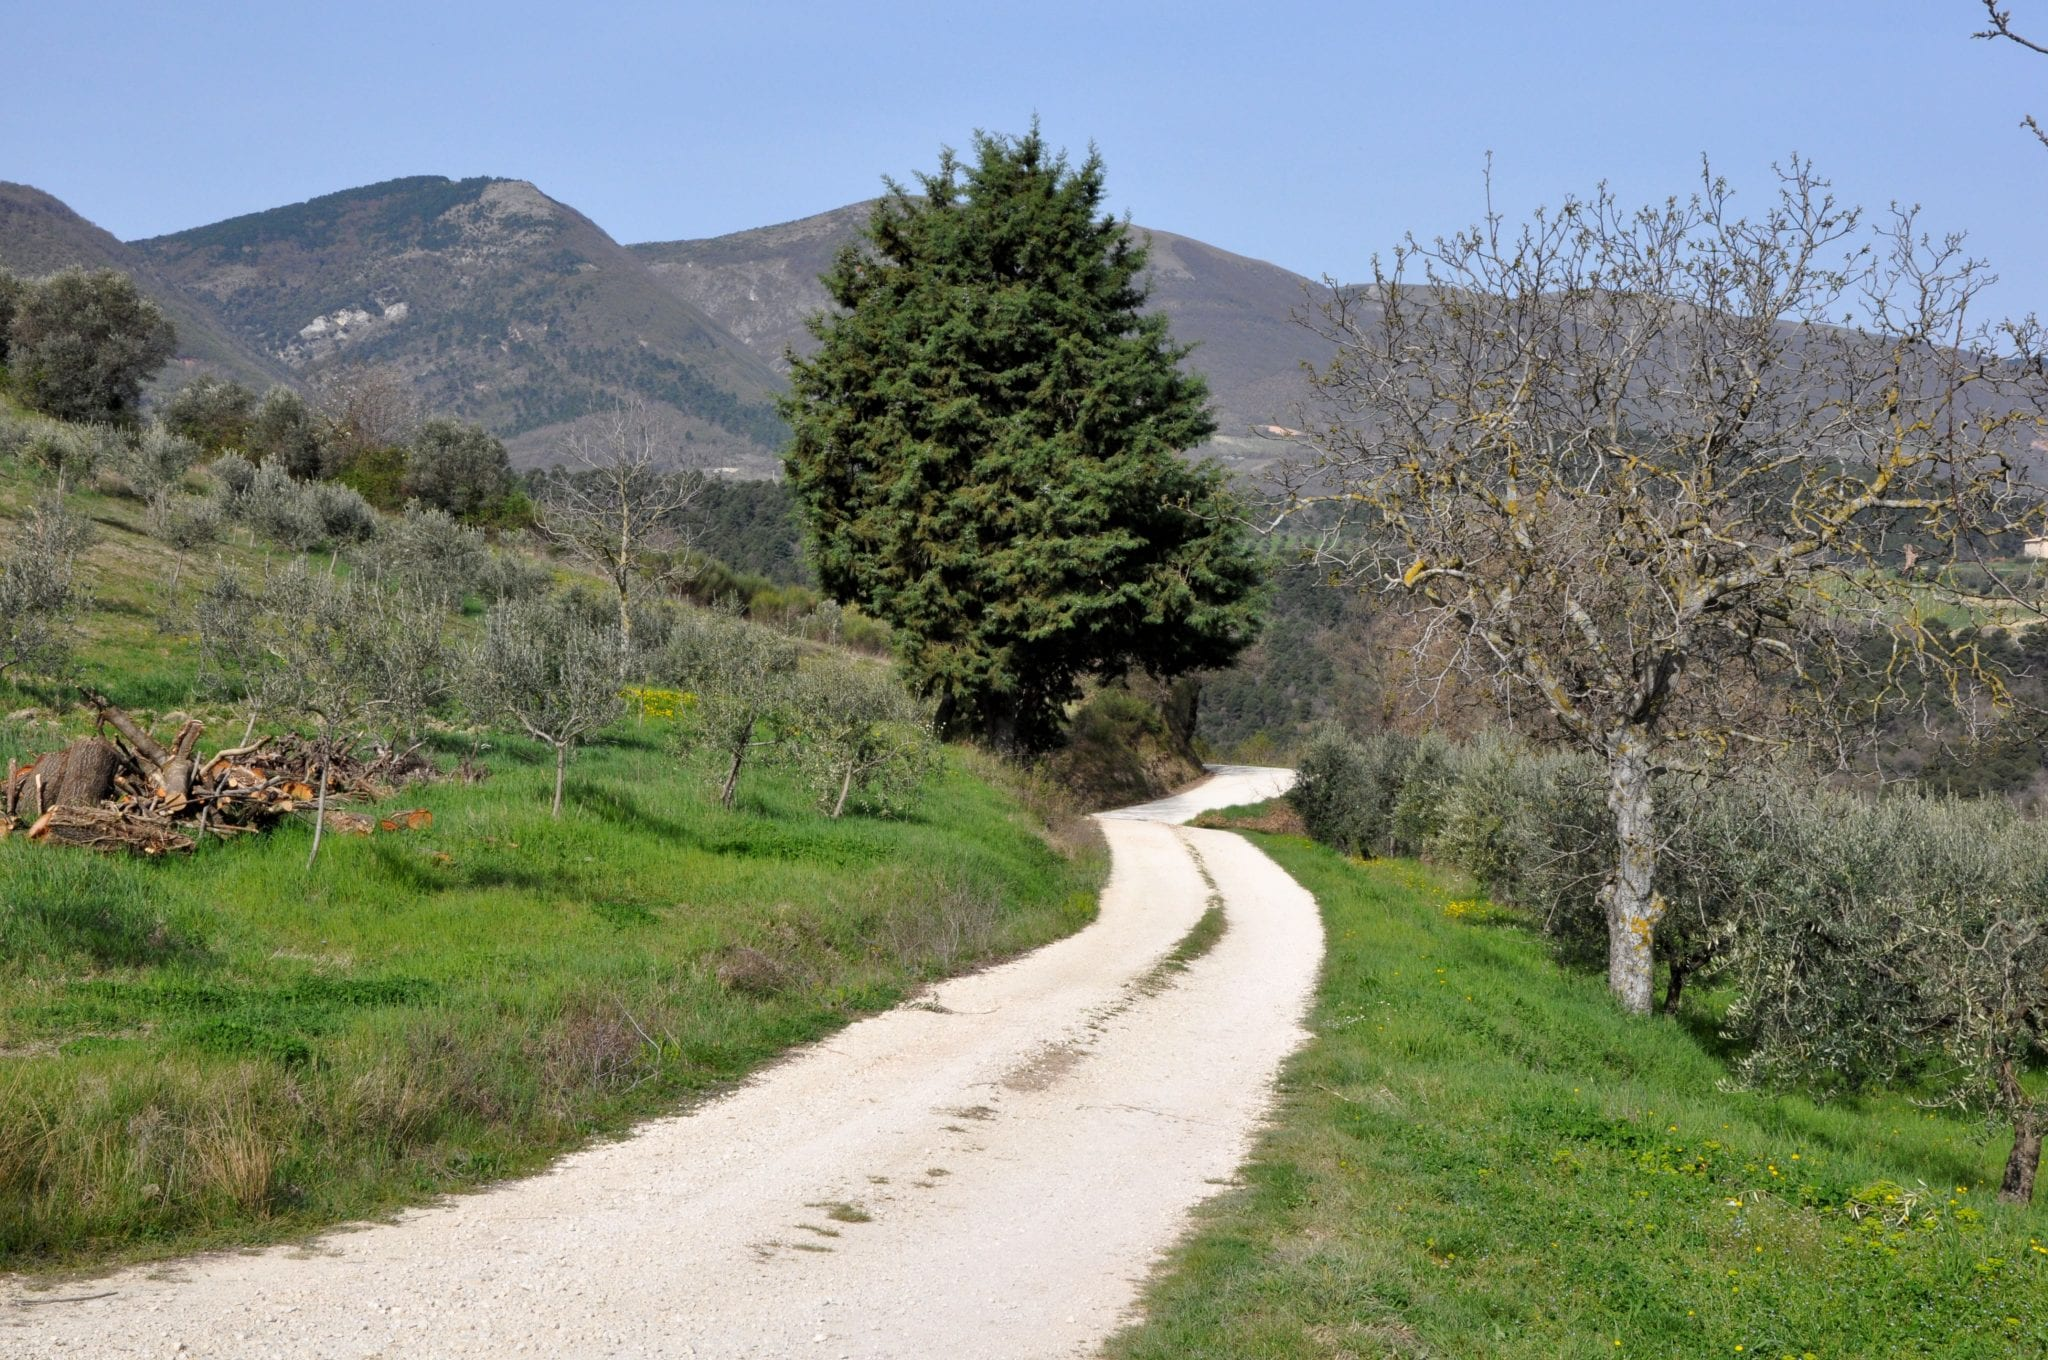 Roads in Italy's countryside can be difficult!